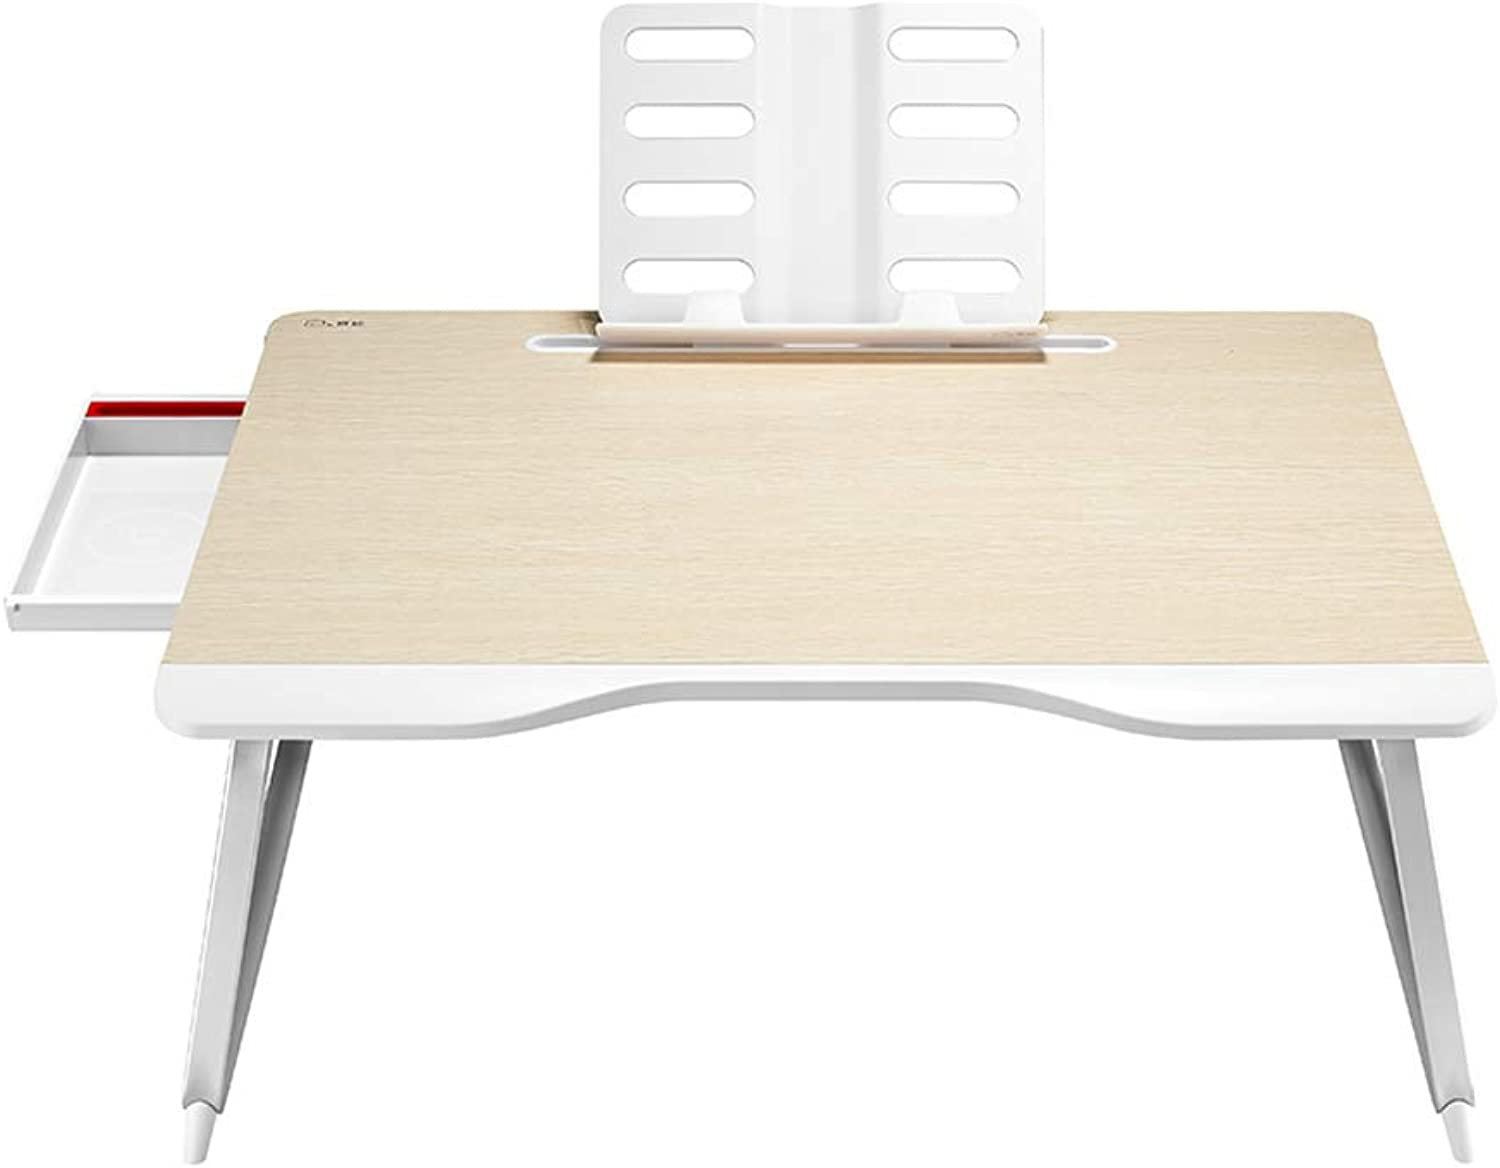 Ailj Small Table On The Bed, Folding Table, Computer Desk, College Student Desk, Folding Lazy Small Table, Multi-Functional Desk, Study Table